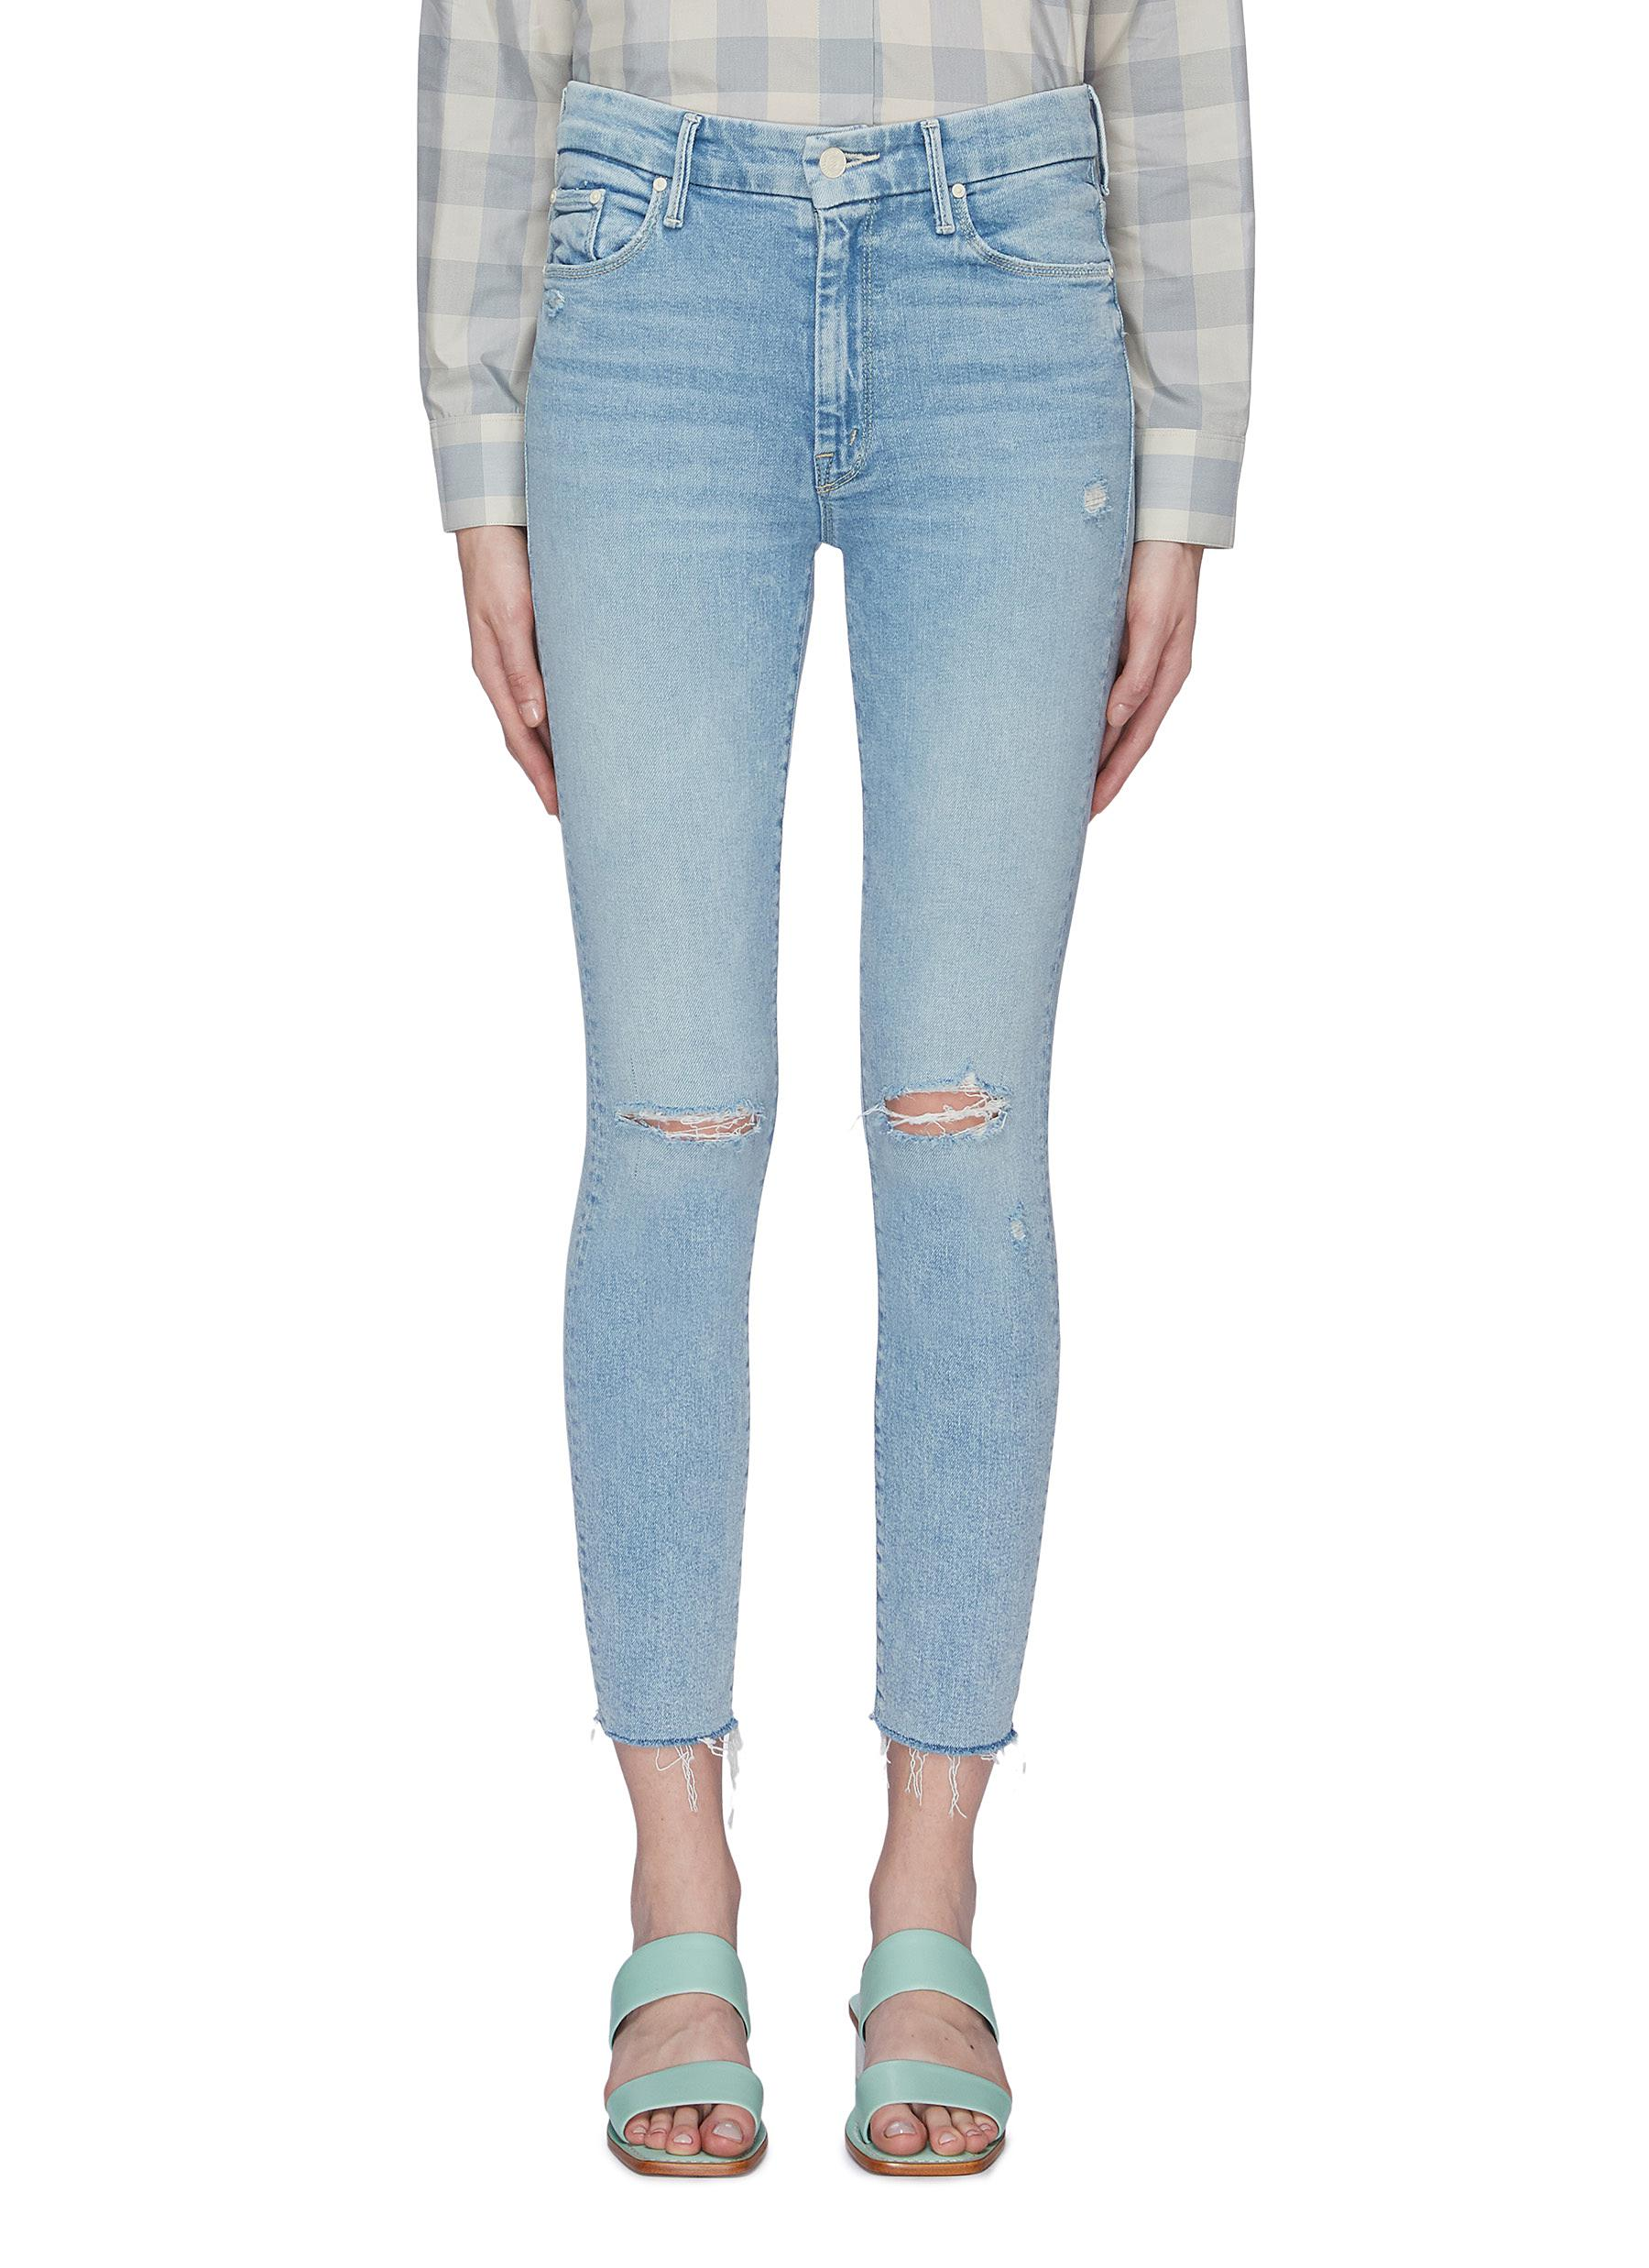 The High Waisted Looker Ankle Fray palm tree print jeans by Mother